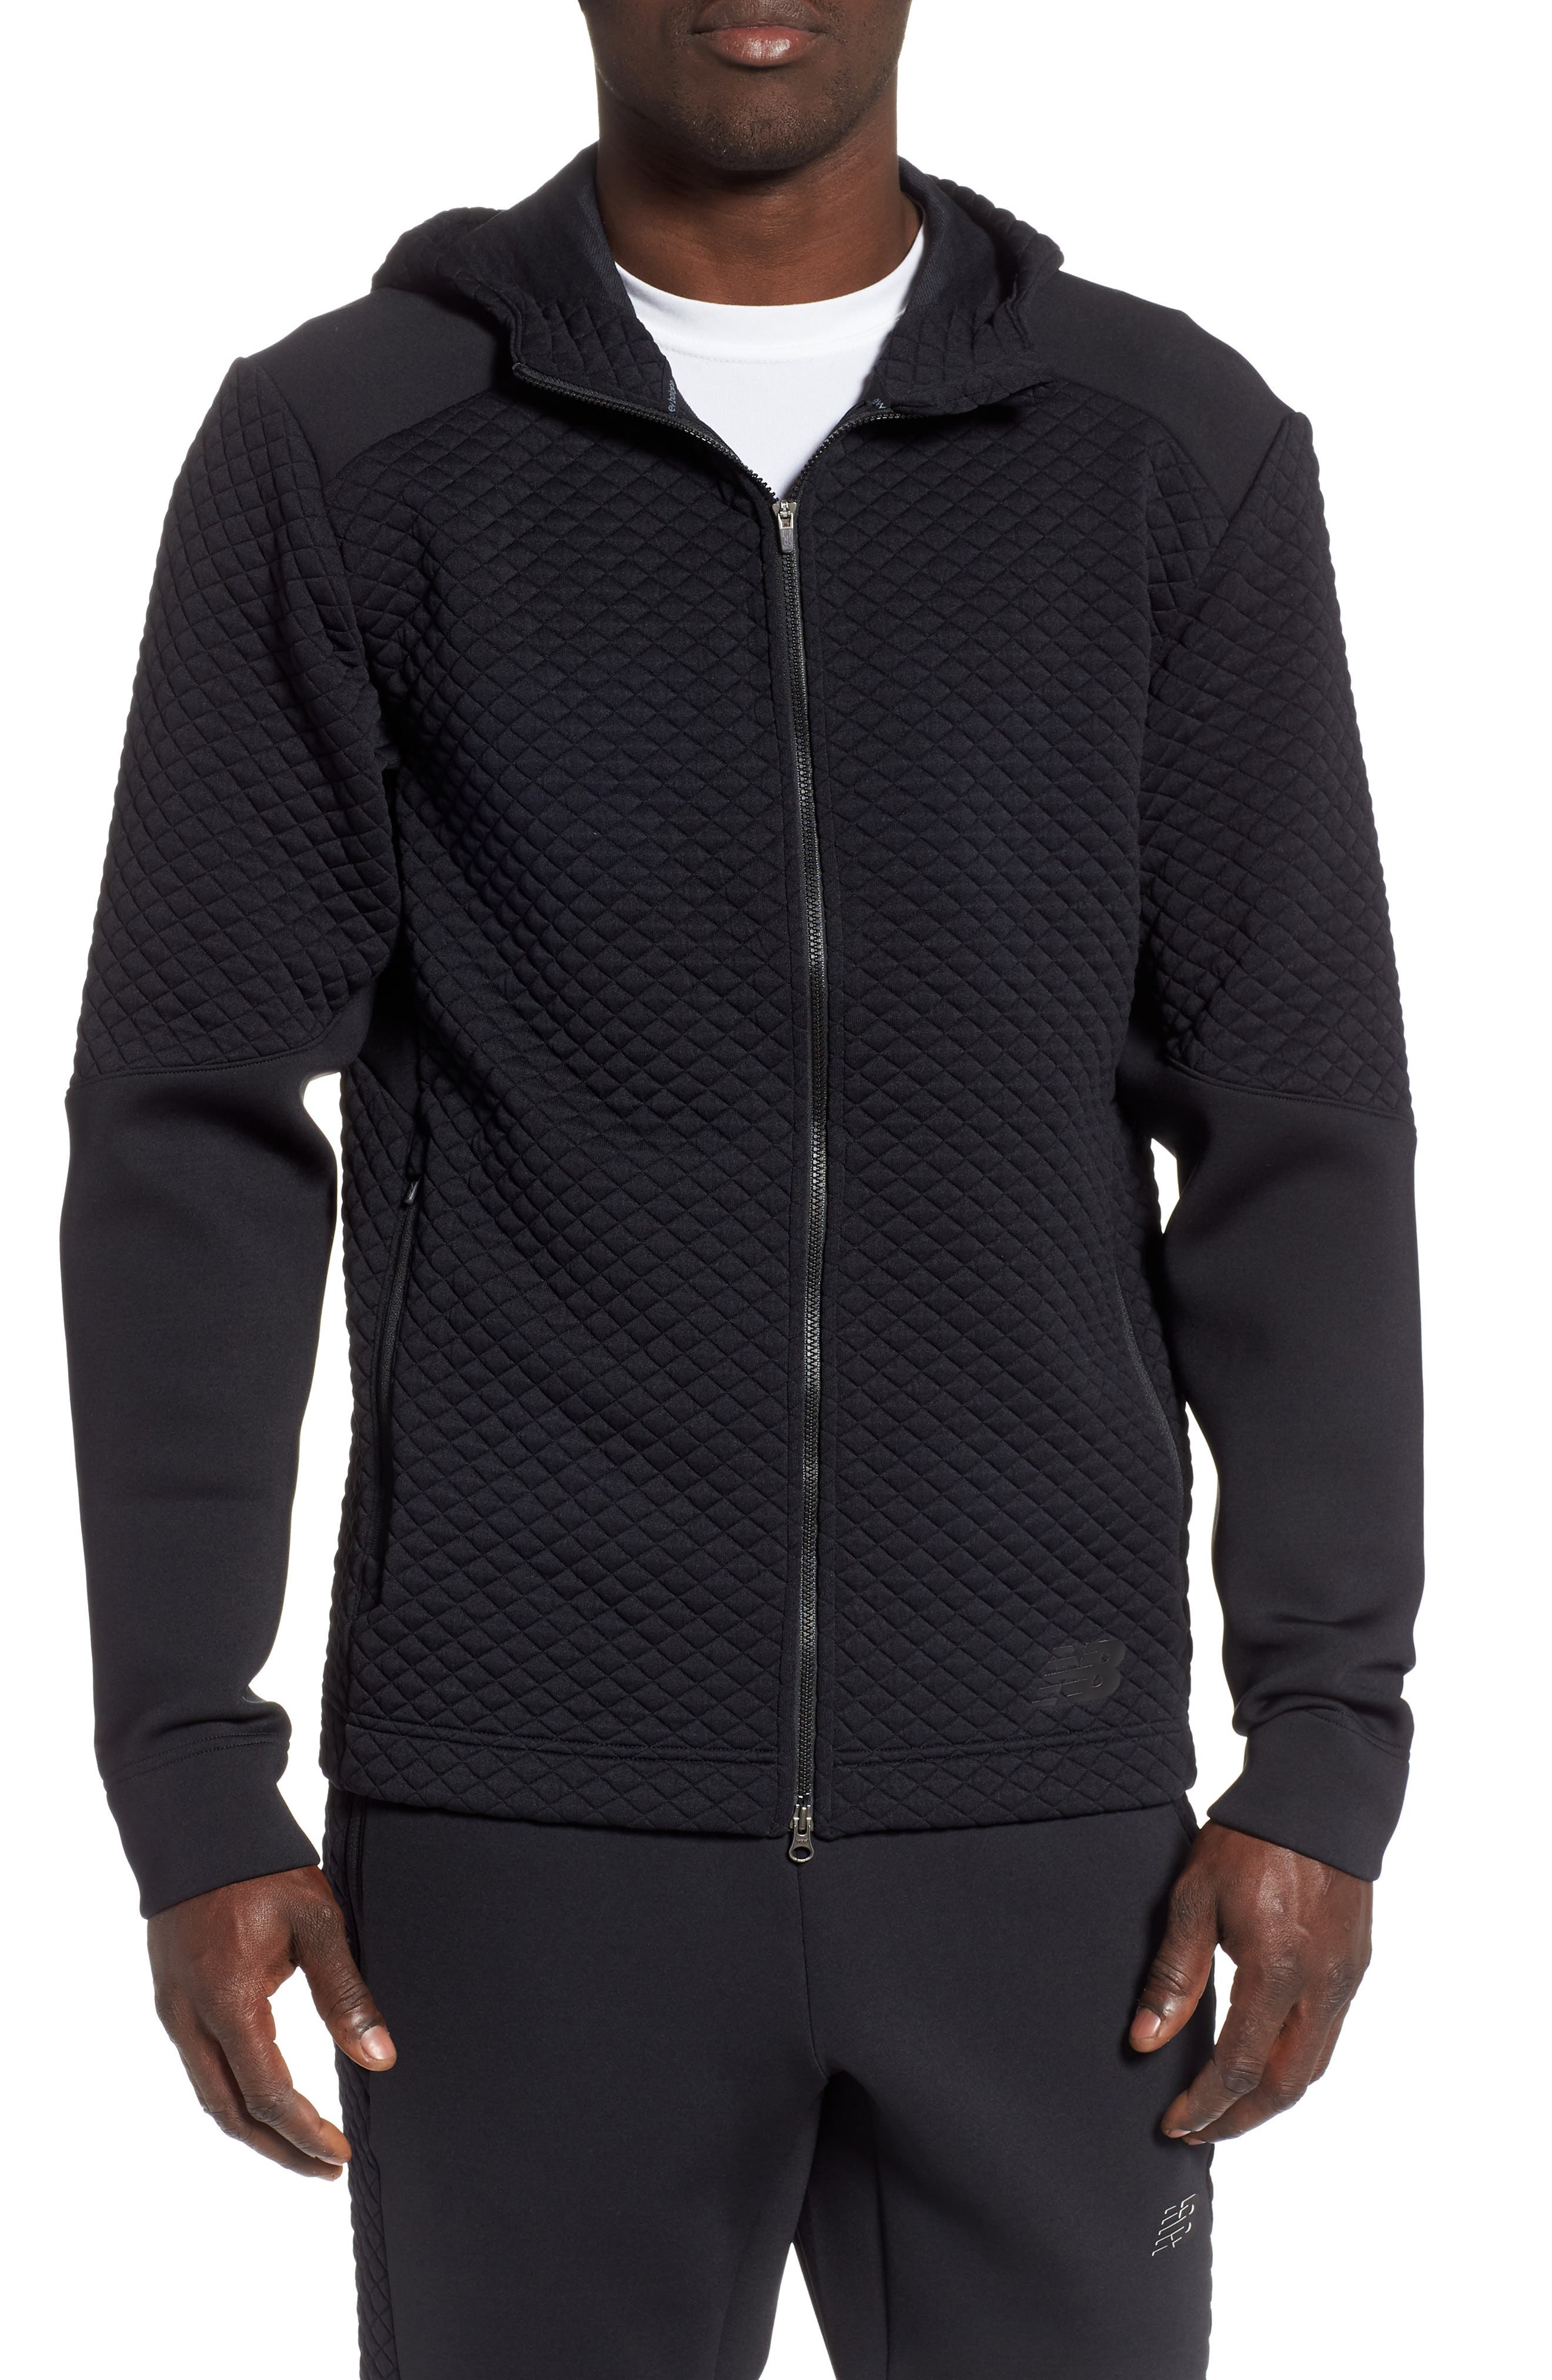 New Balance Heat Loft Zip Hoodie, Black